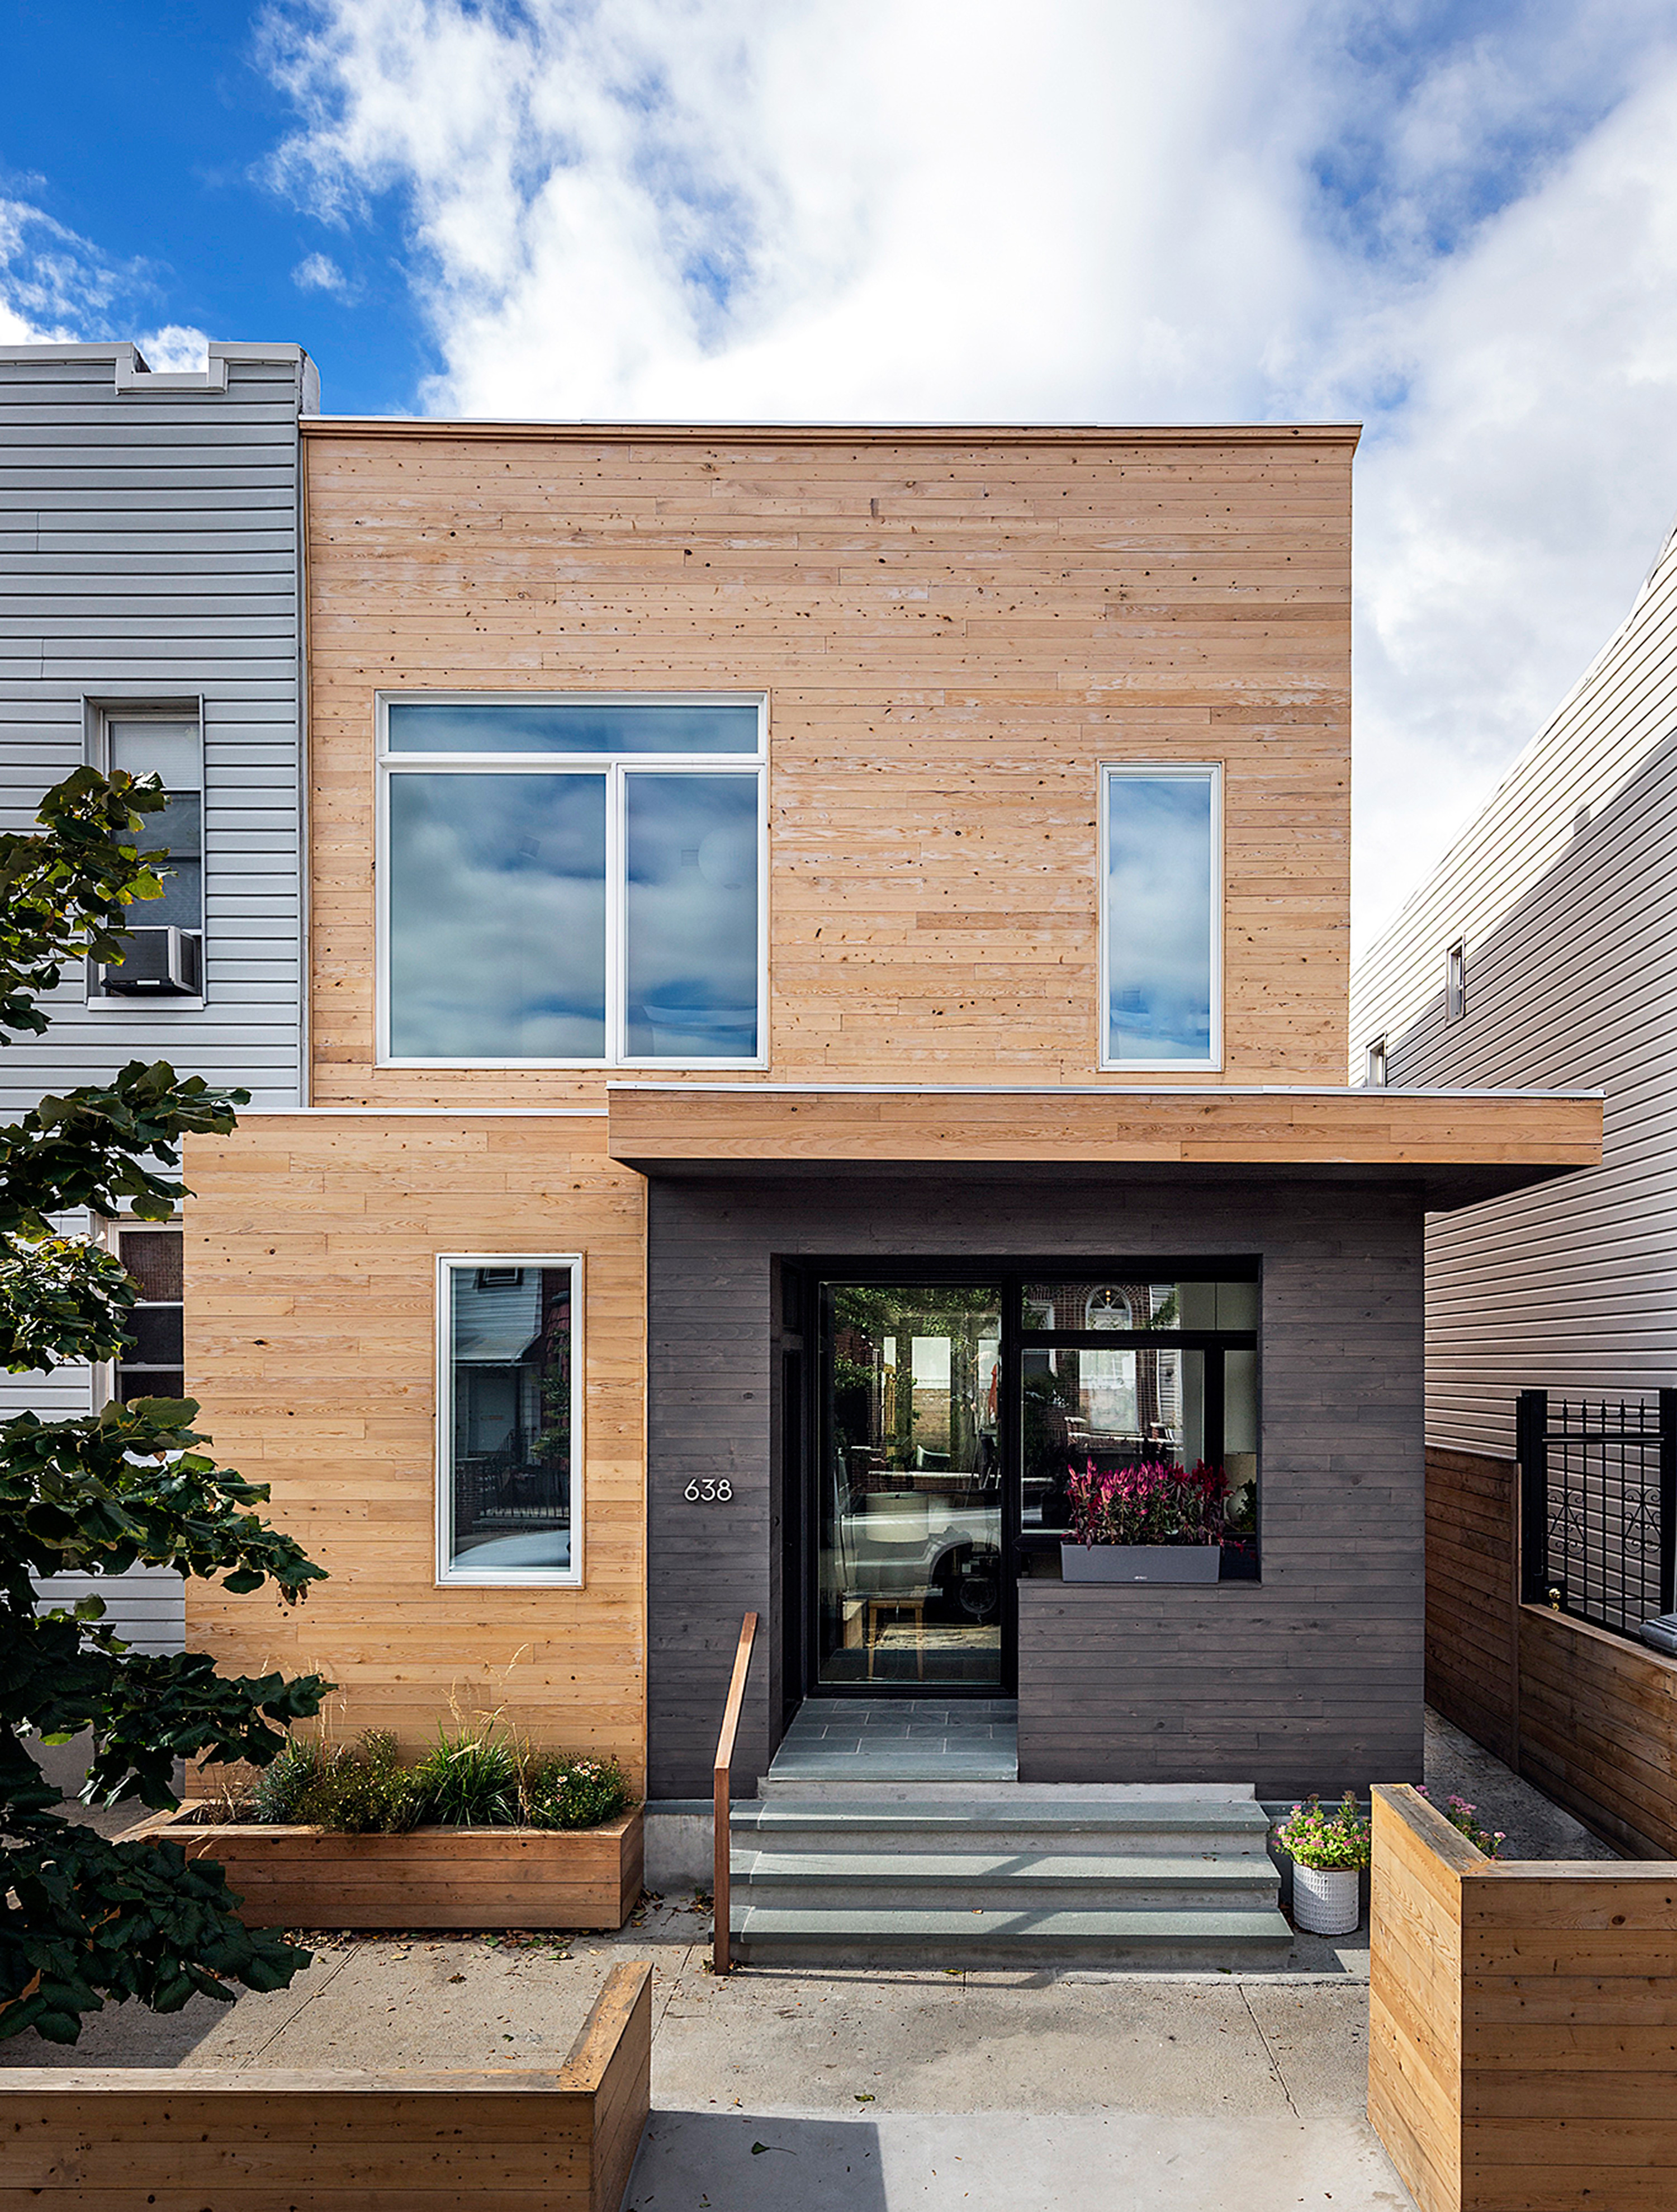 cambios arquitectura barrio trendy brooklyn